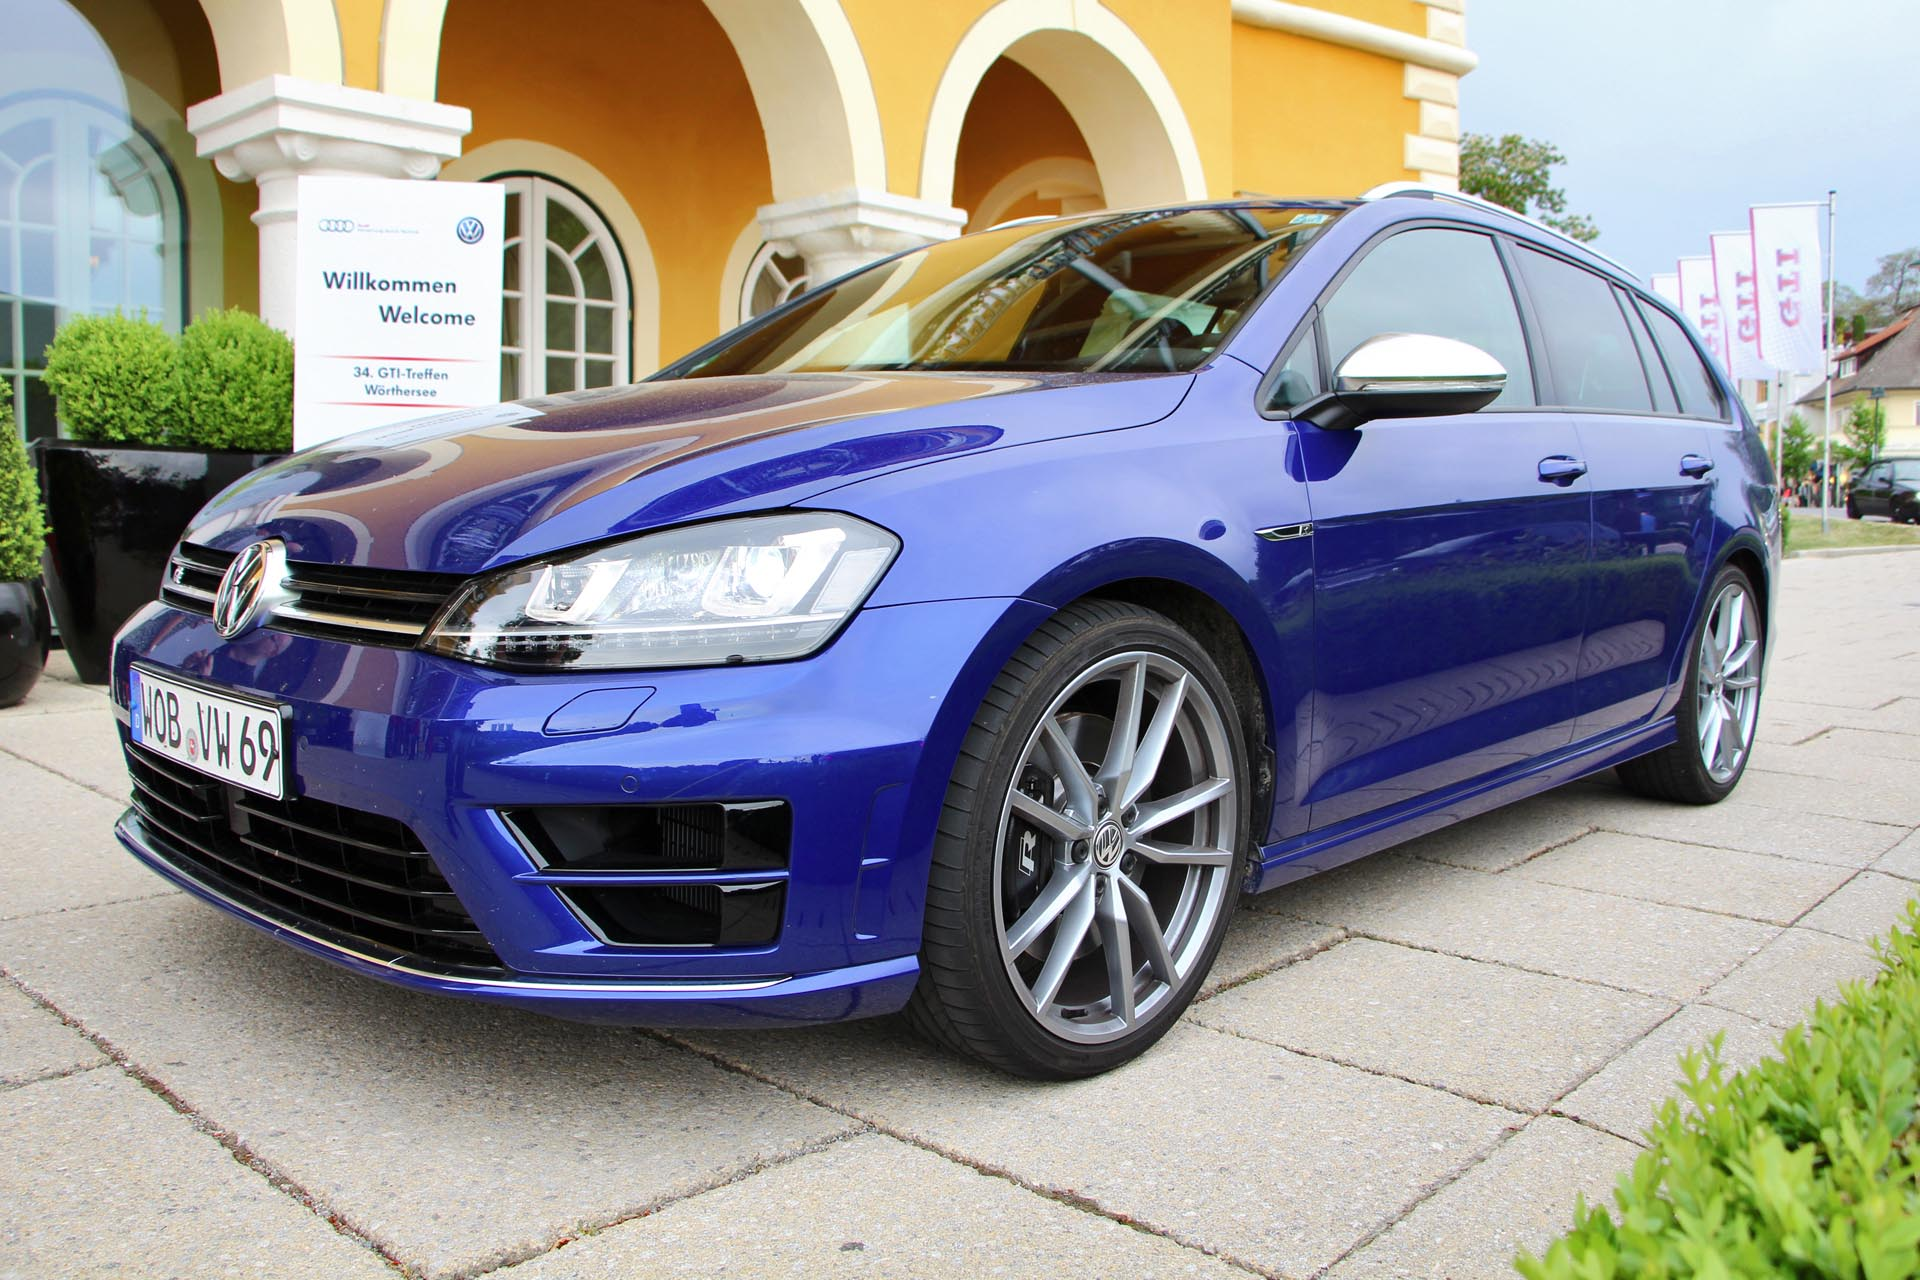 2018 Volkswagen Golf R Variant photo - 4